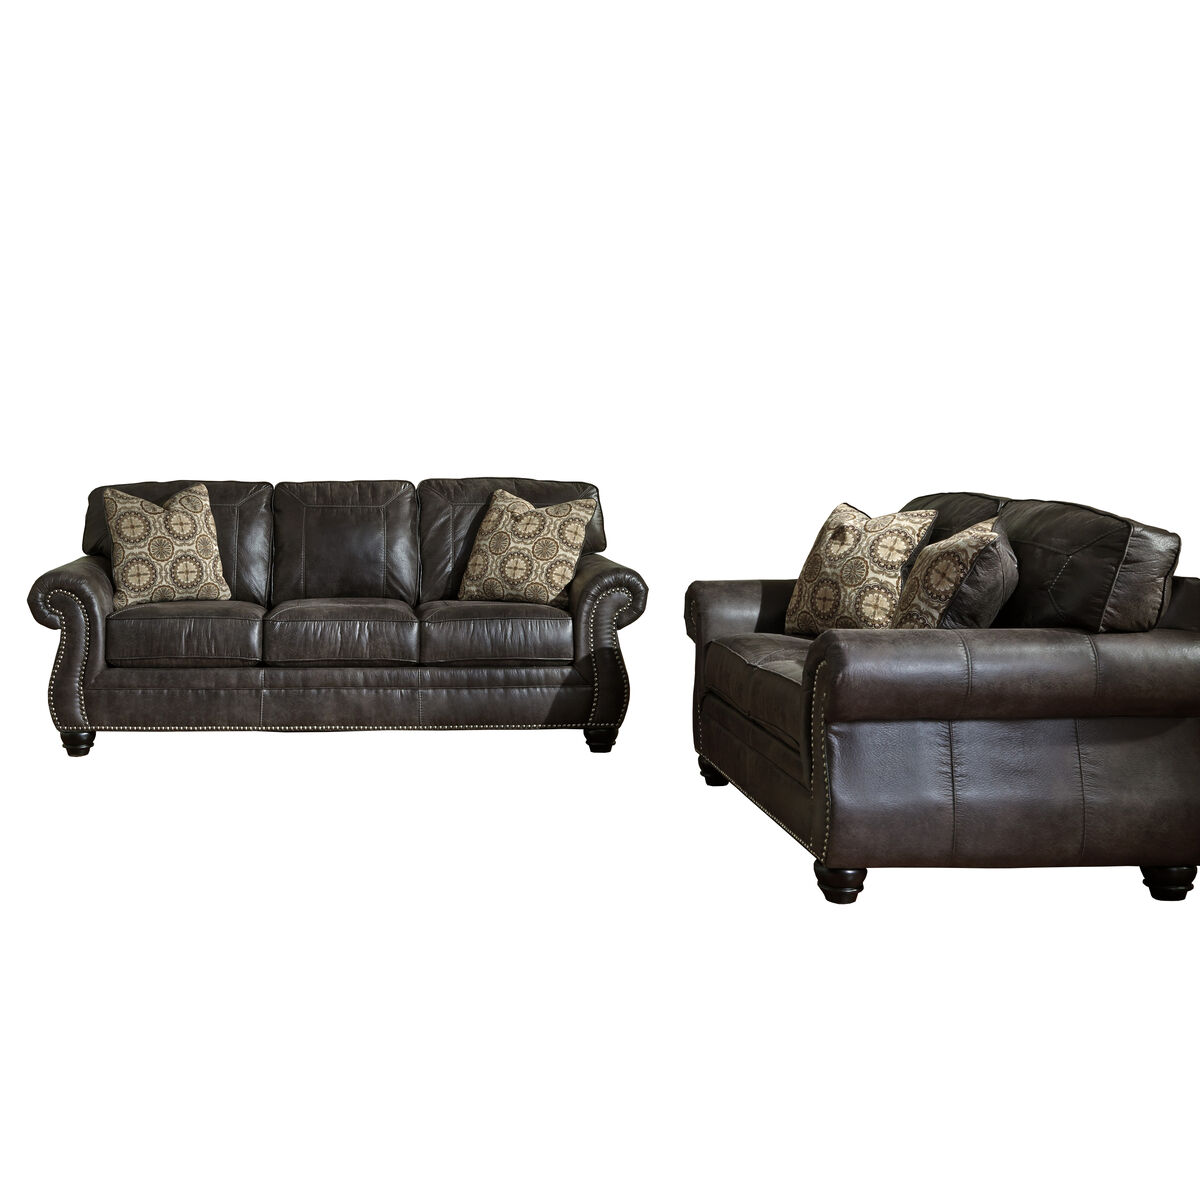 Enjoyable Benchcraft Breville Living Room Set In Charcoal Faux Leather Beatyapartments Chair Design Images Beatyapartmentscom